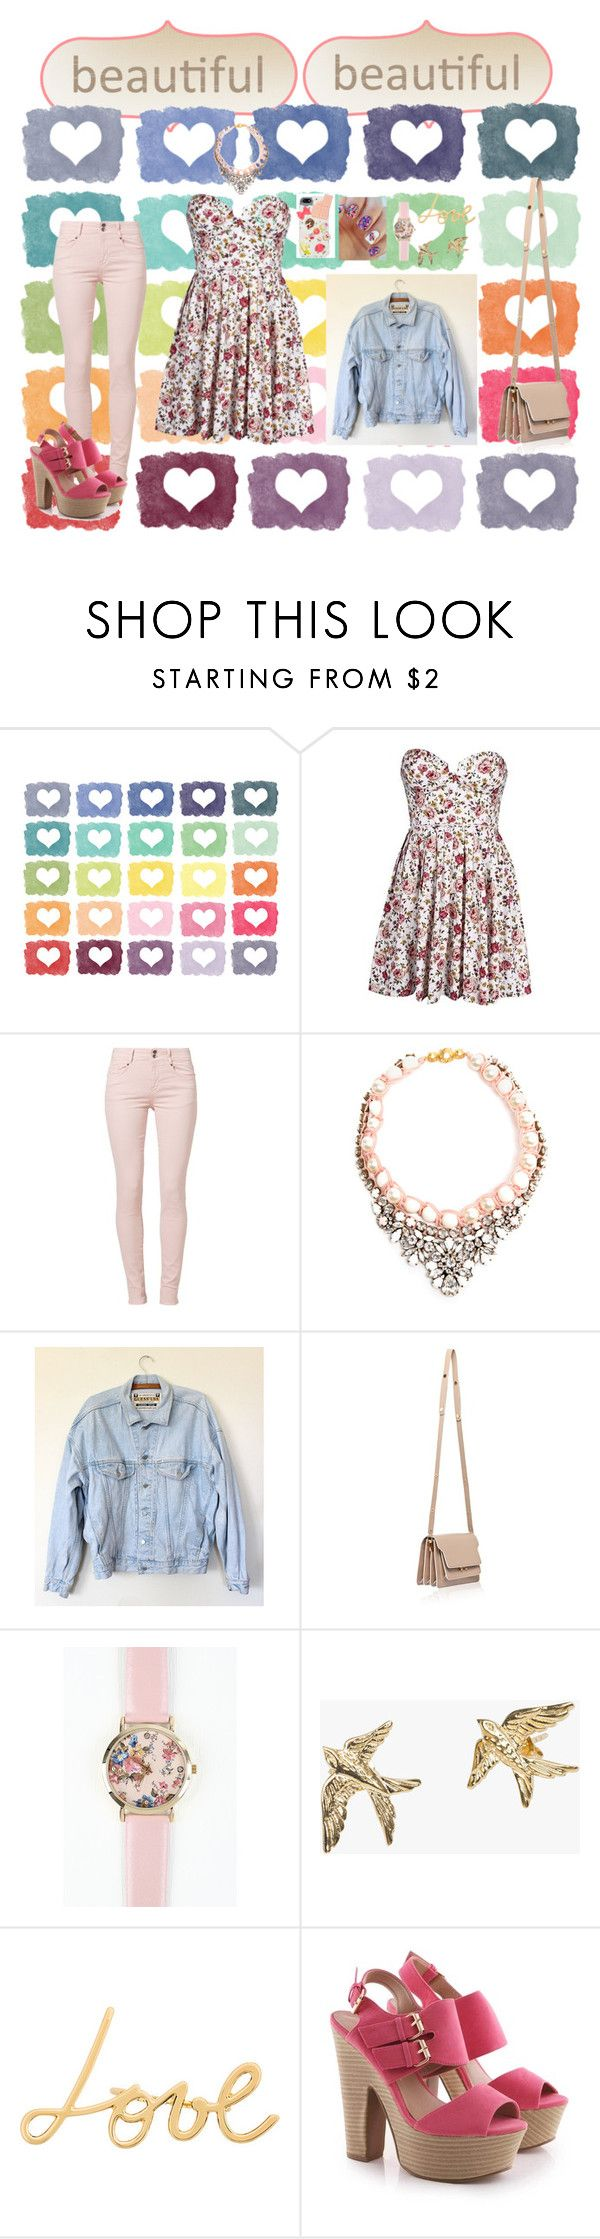 """""""Eid clothes <3"""" by manounou ❤ liked on Polyvore featuring Soyaconcept, SHOUROUK, Marni, Zoe & Morgan and Lanvin"""